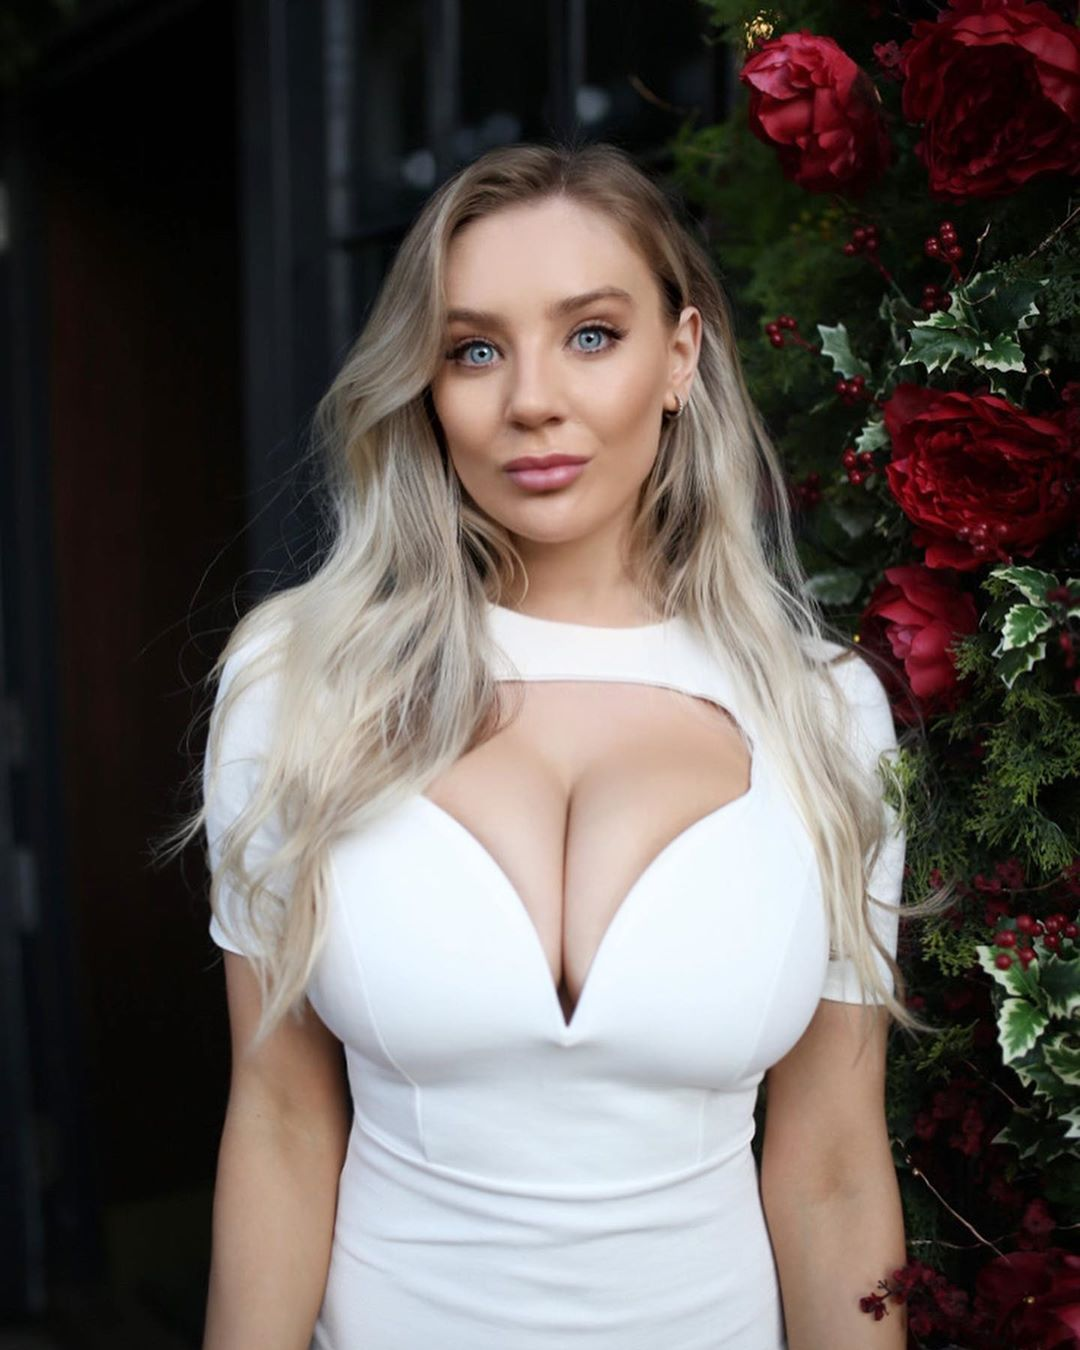 Amazing! Busty Nude Model is Showing Off Her Eye-Catching Cleavage